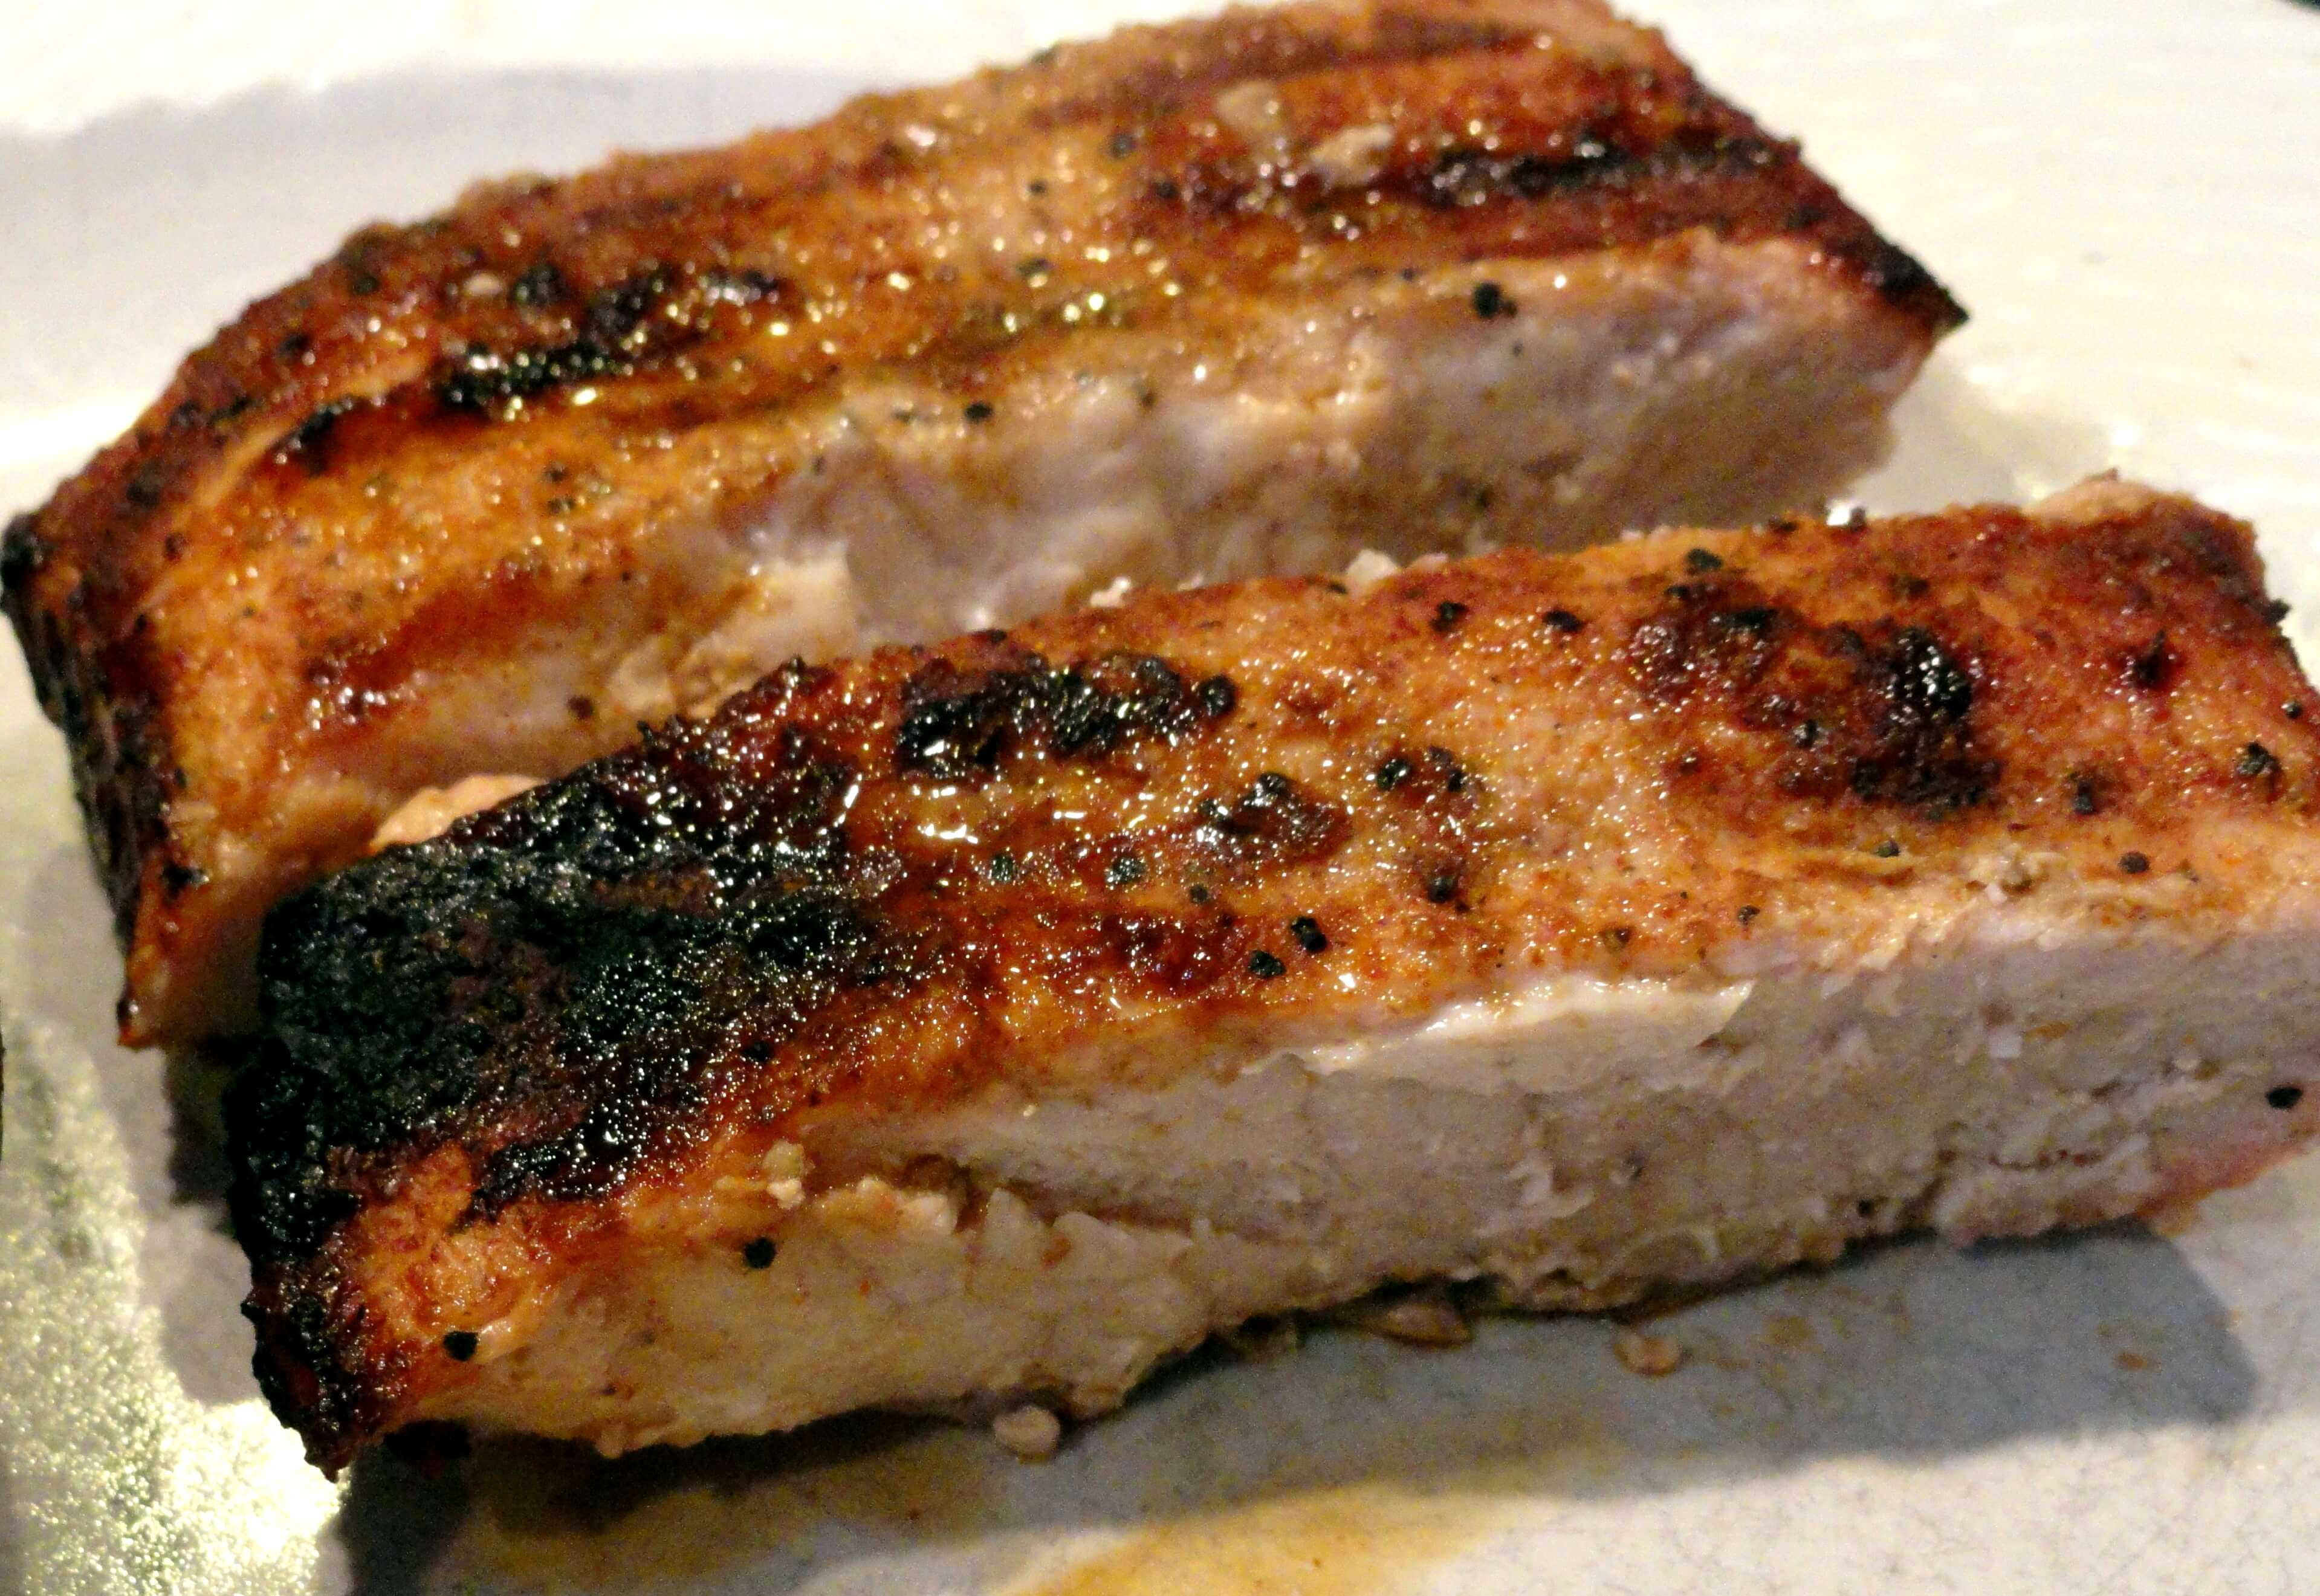 How To Cook Boneless Pork Ribs In The Oven Fast  Grilled Cajun Country Style Boneless Pork Ribs